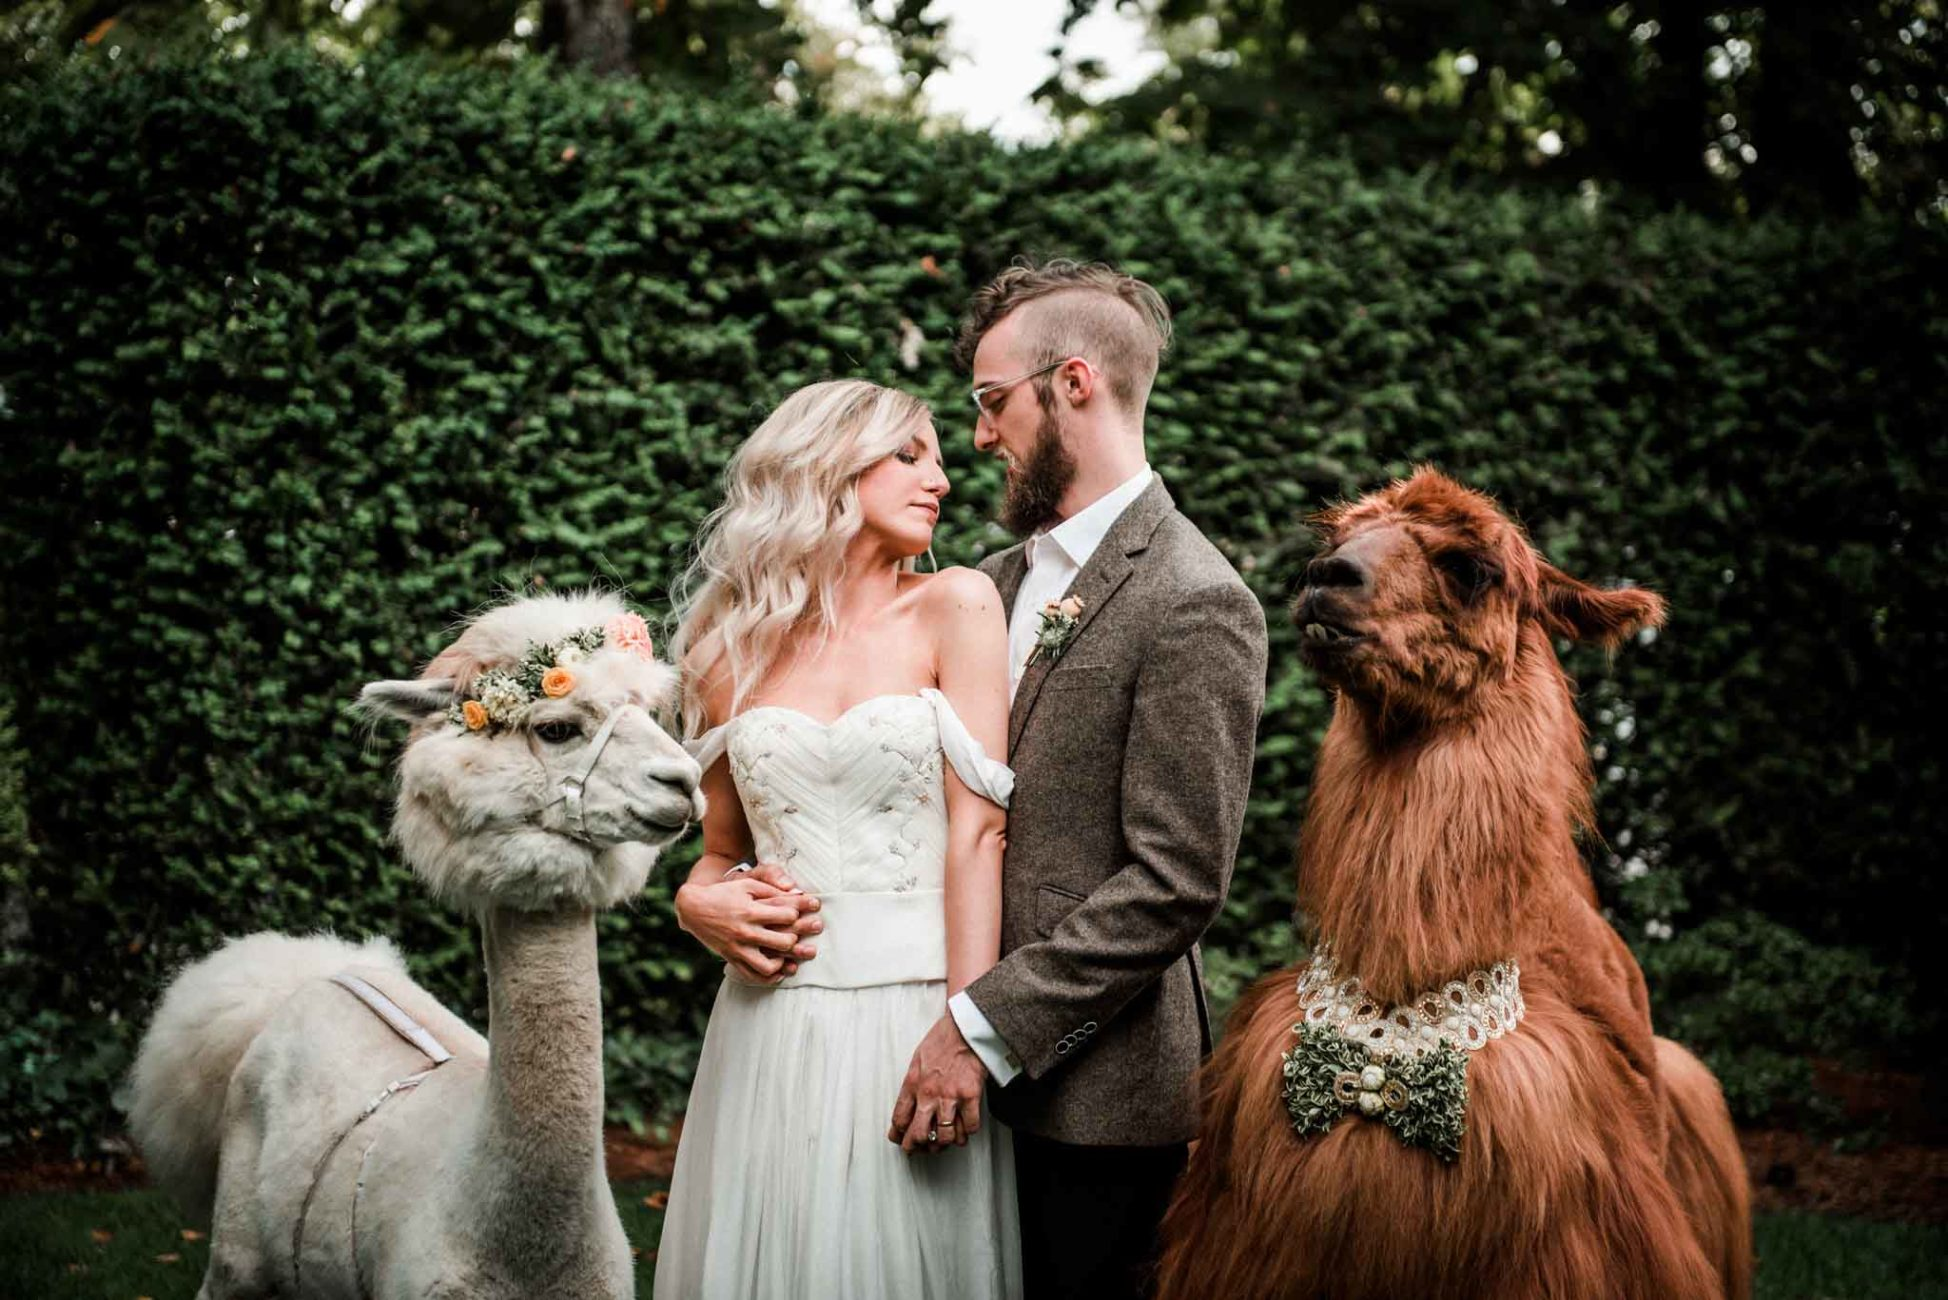 Bride and groom portrait taken at their Gray Gables Estate Wedding with Classy Camelids wedding llamas and a Desiree Spice wedding dress by Dionne Kraus Photography